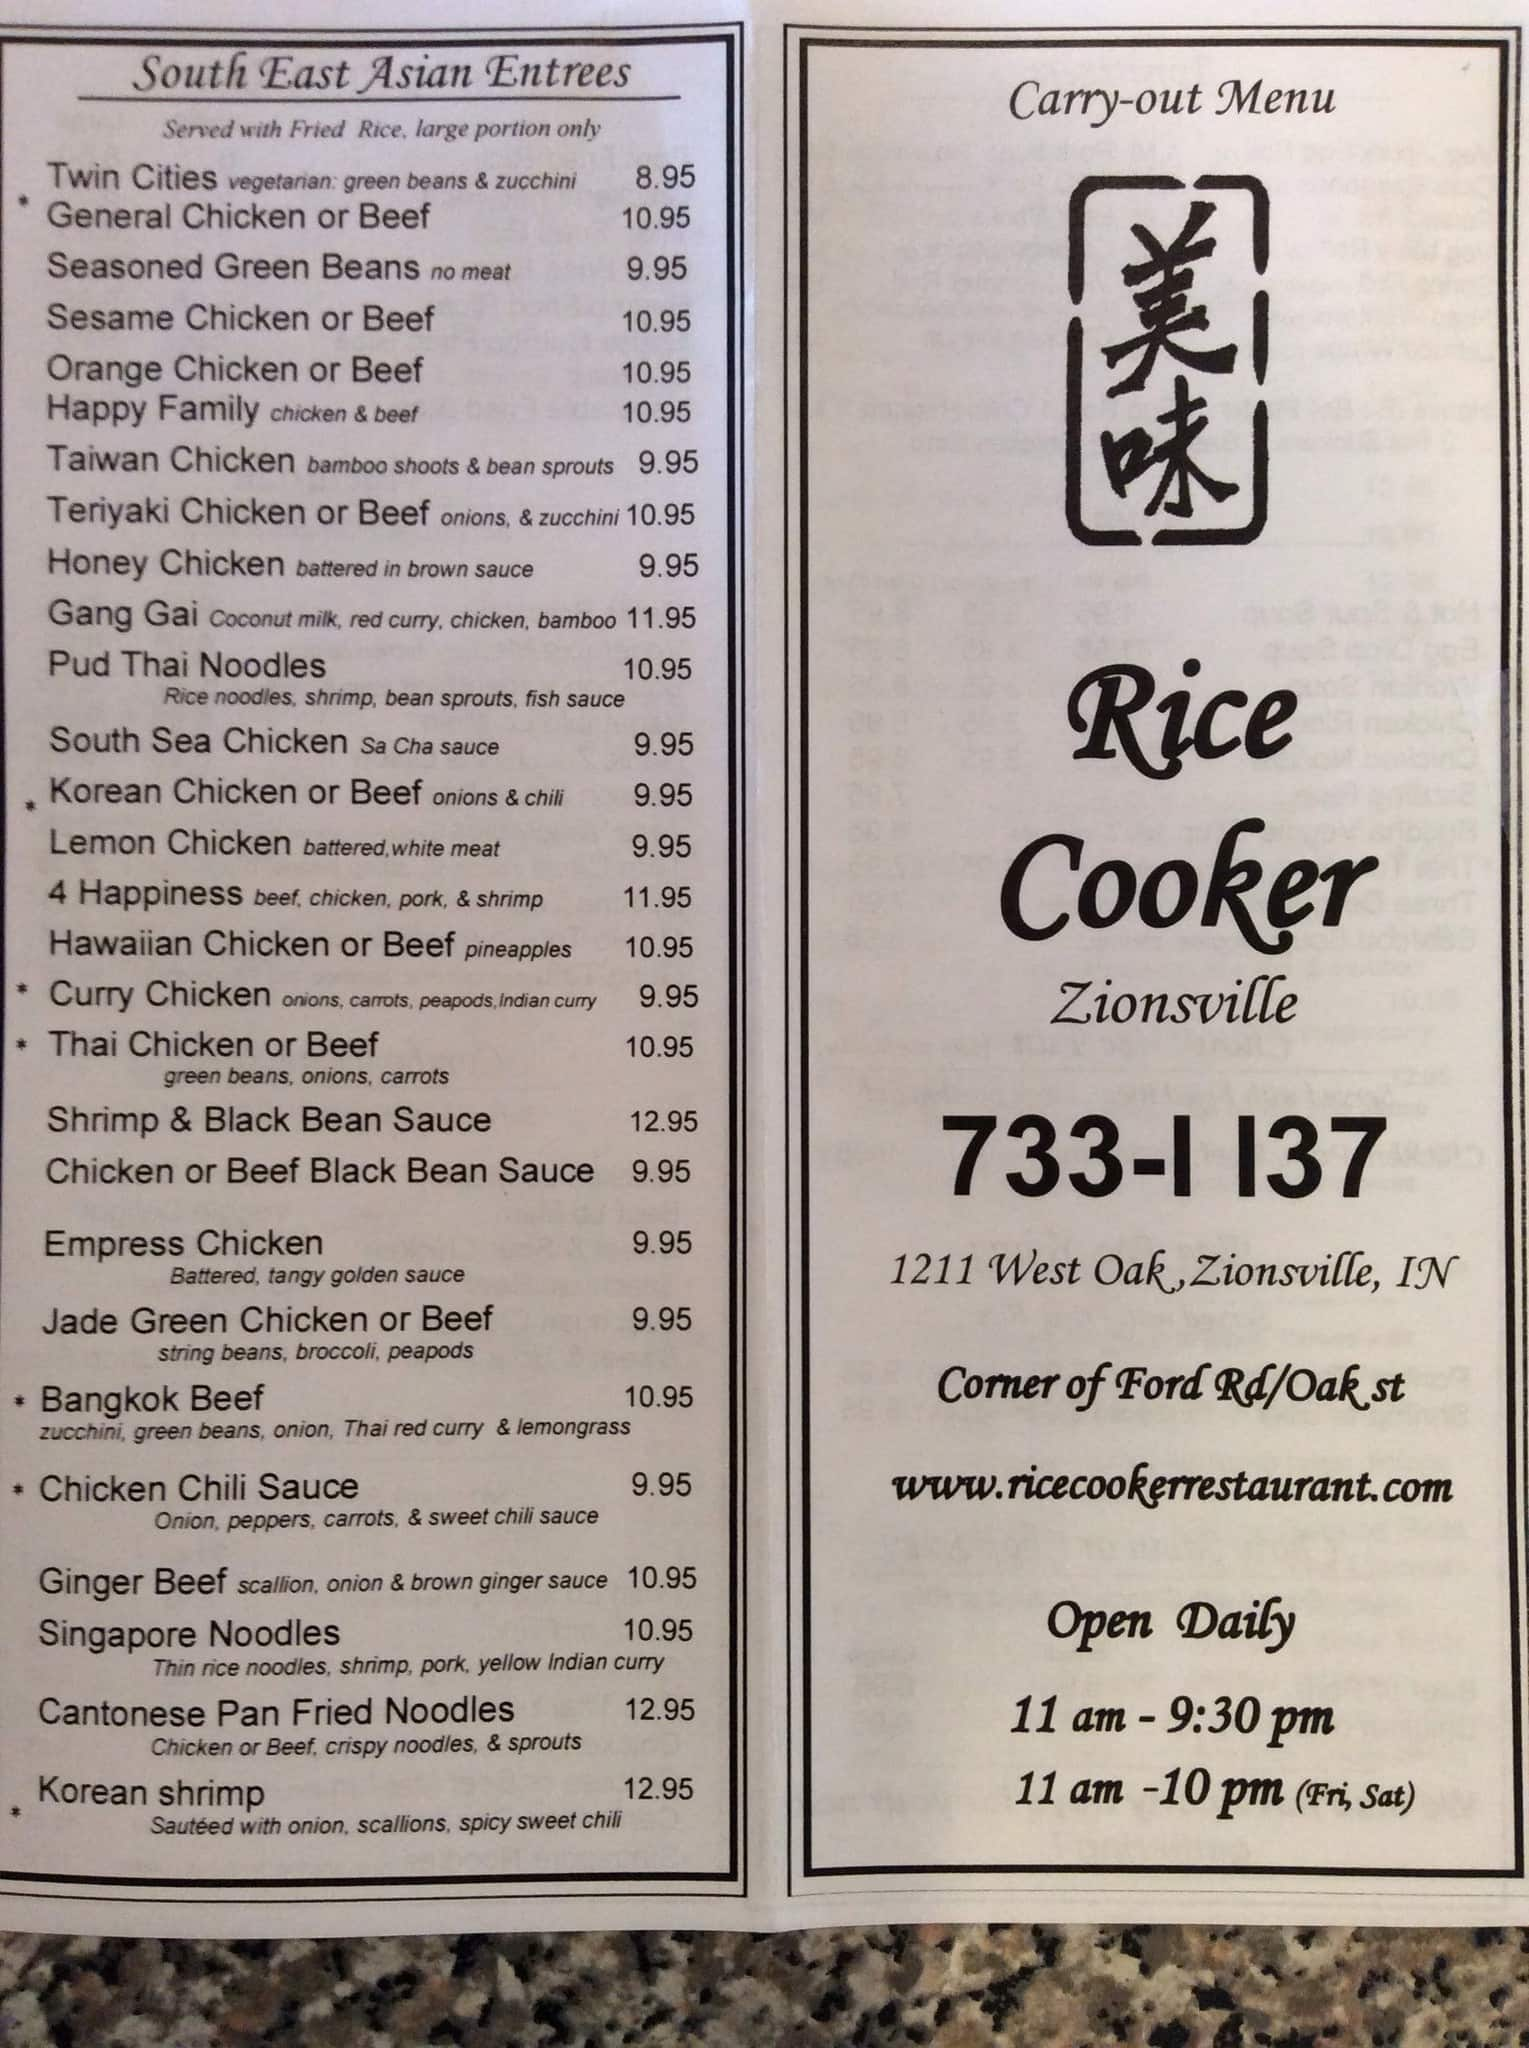 Been to Rice Cooker? Share your experiences!